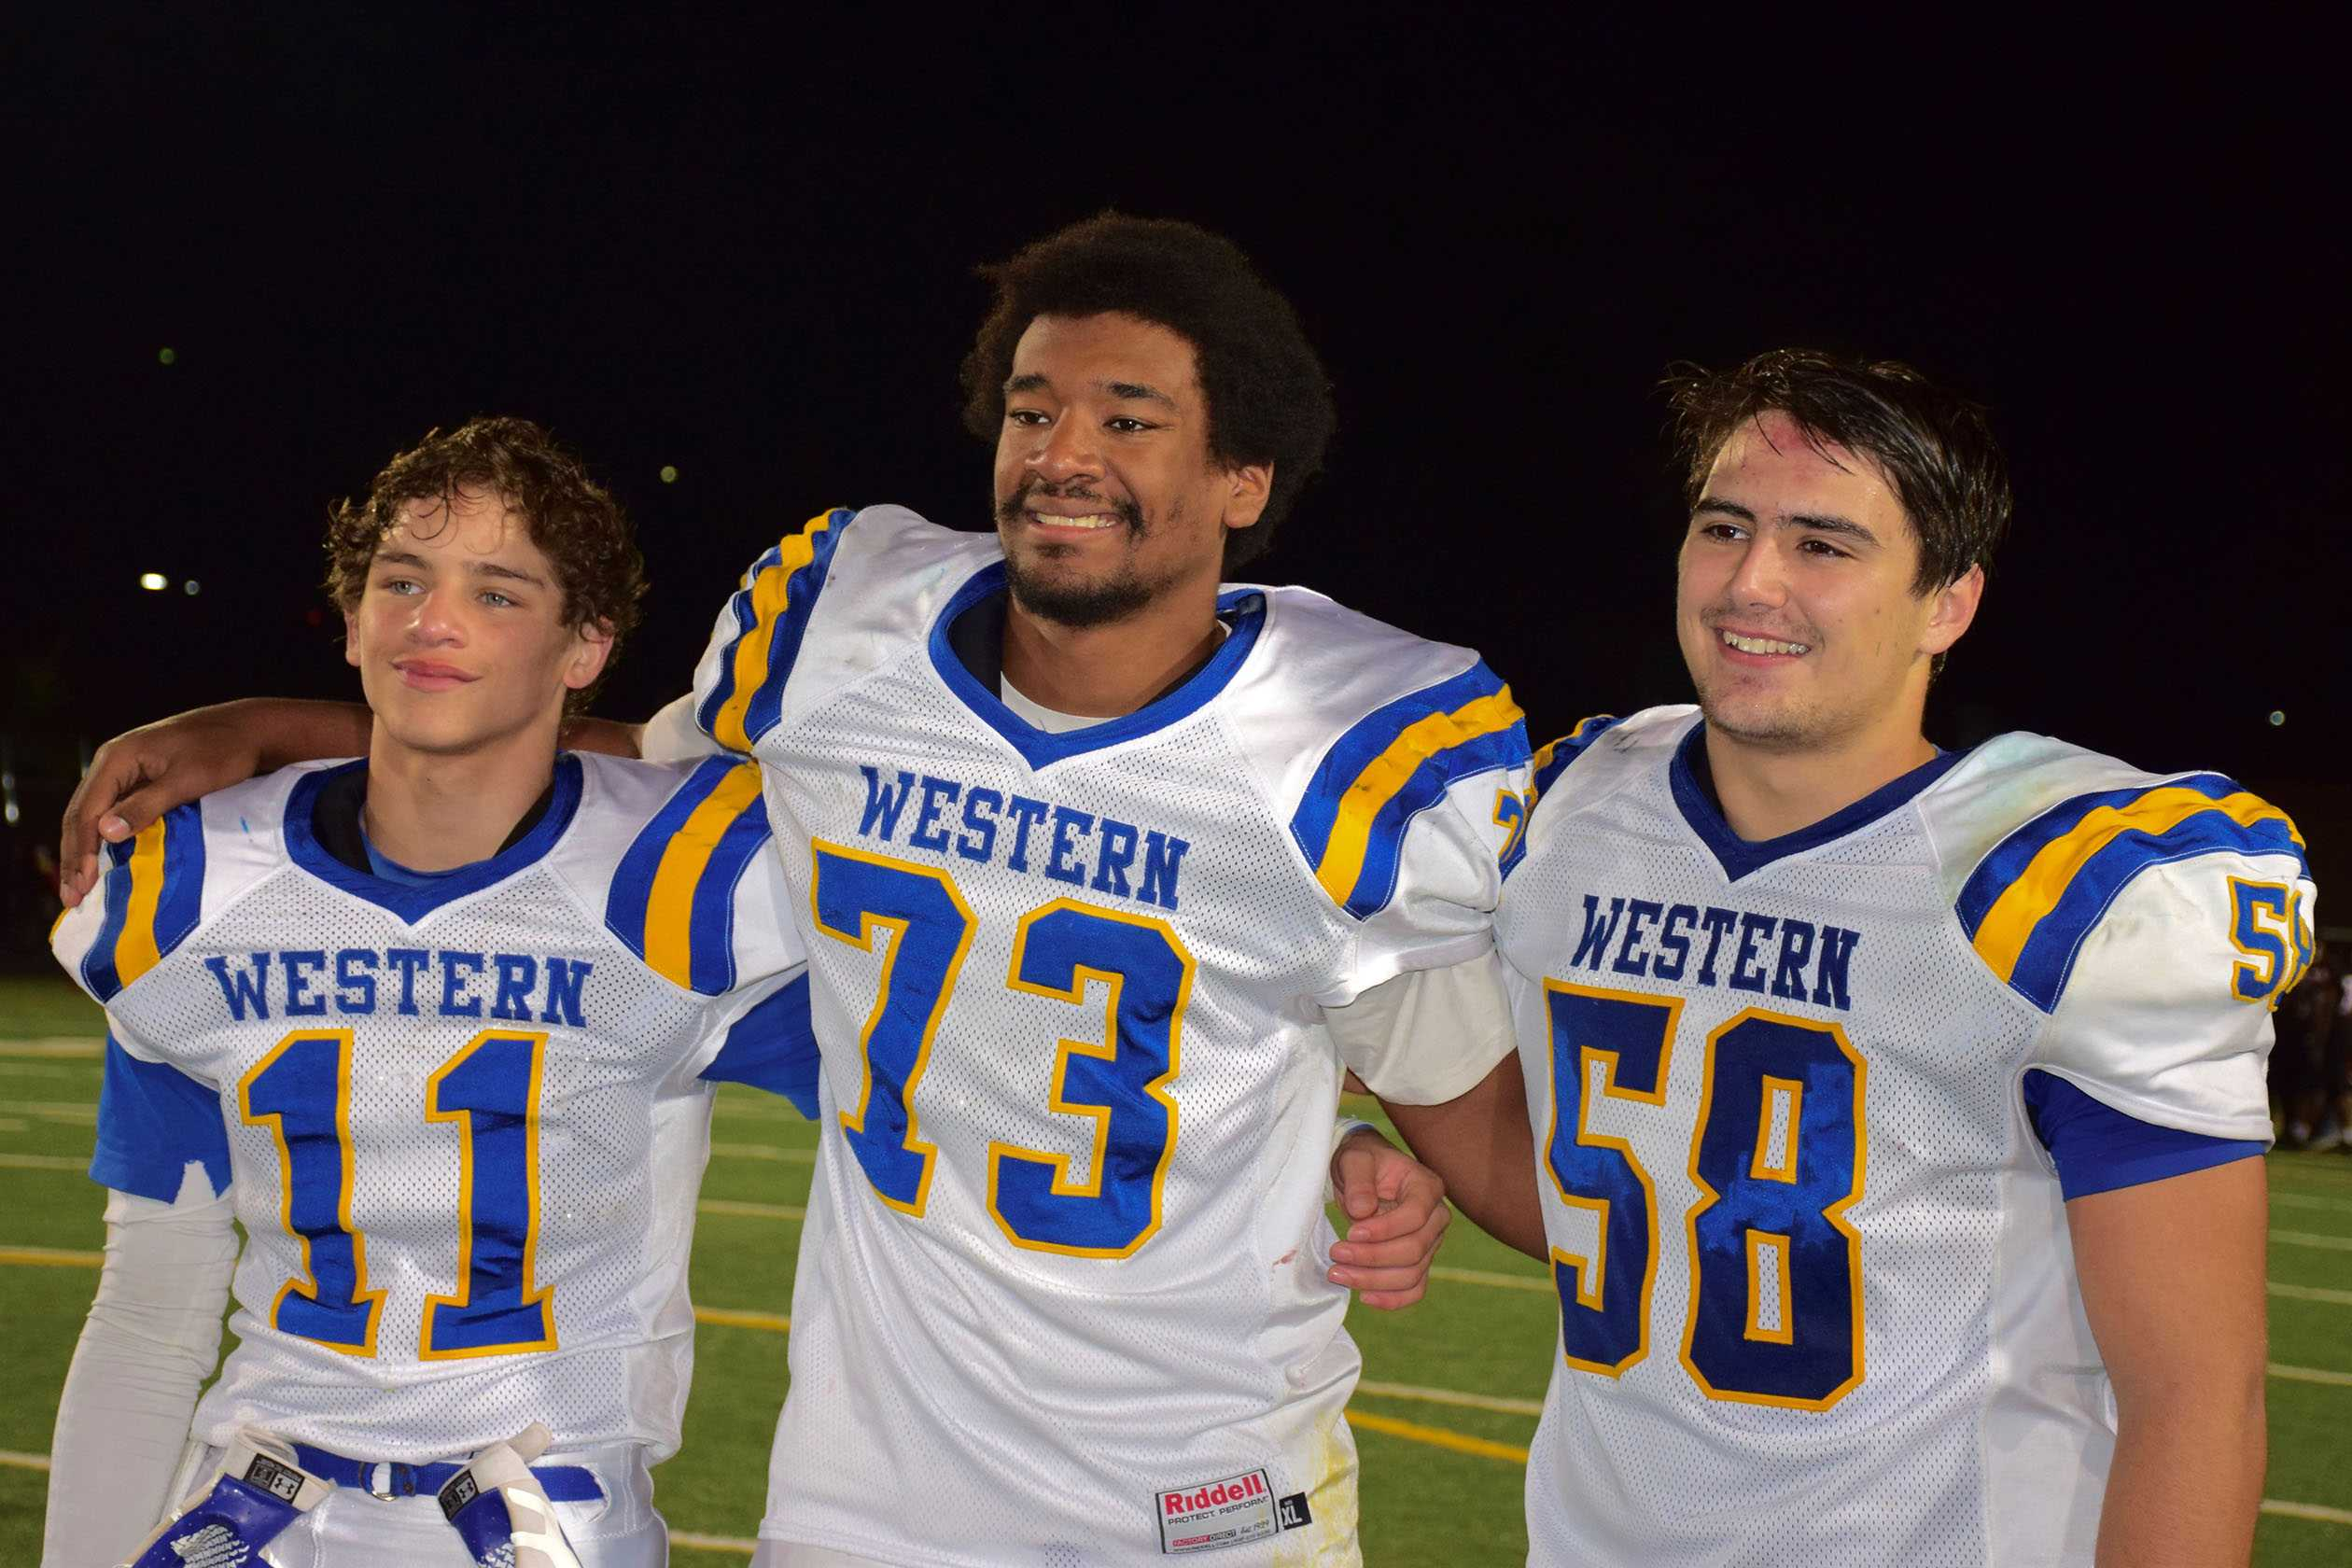 Crutchfield (center, 73) smiles for pictures after win over CHS.